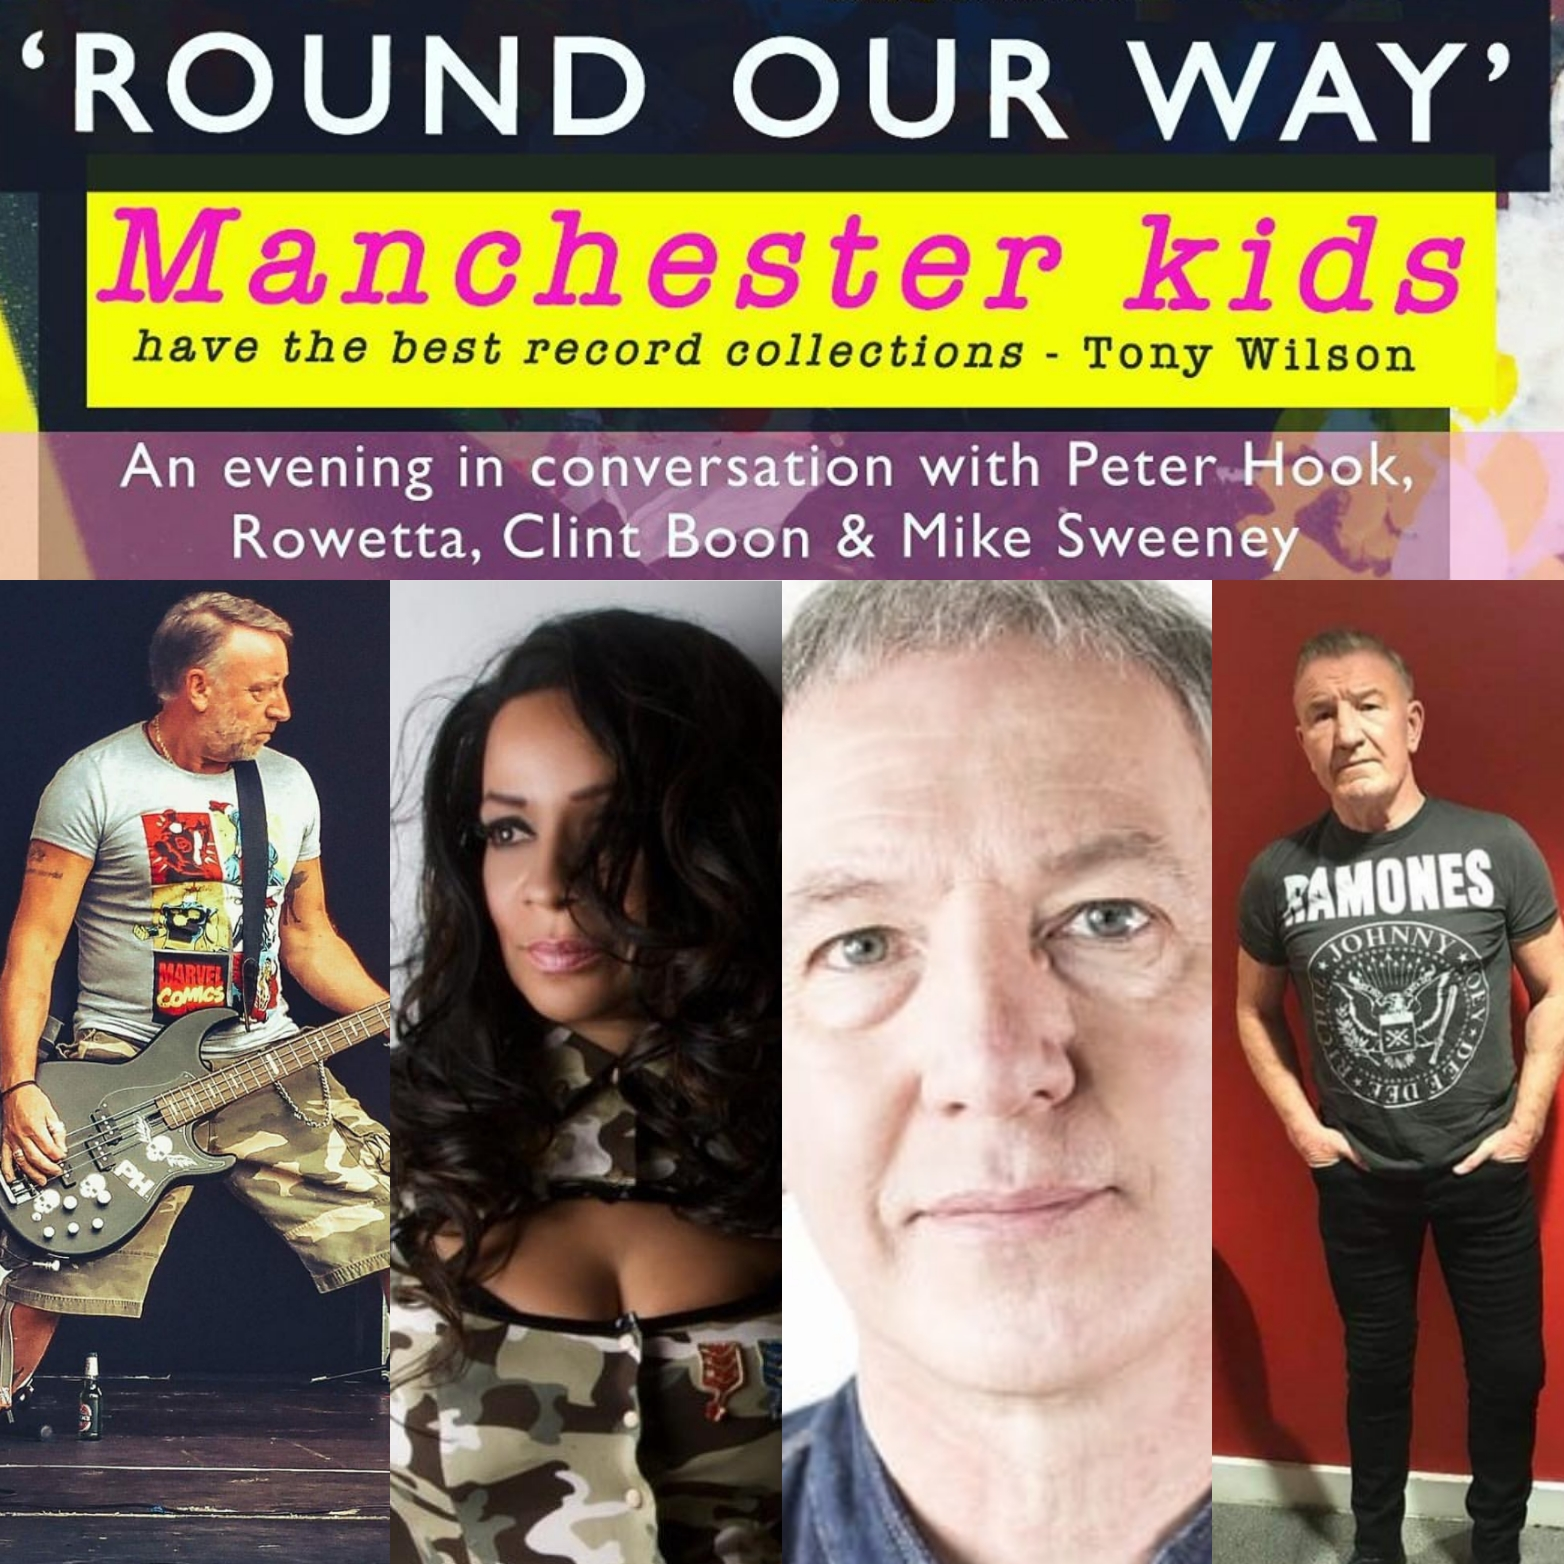 EVENT: 'Round Our Way'